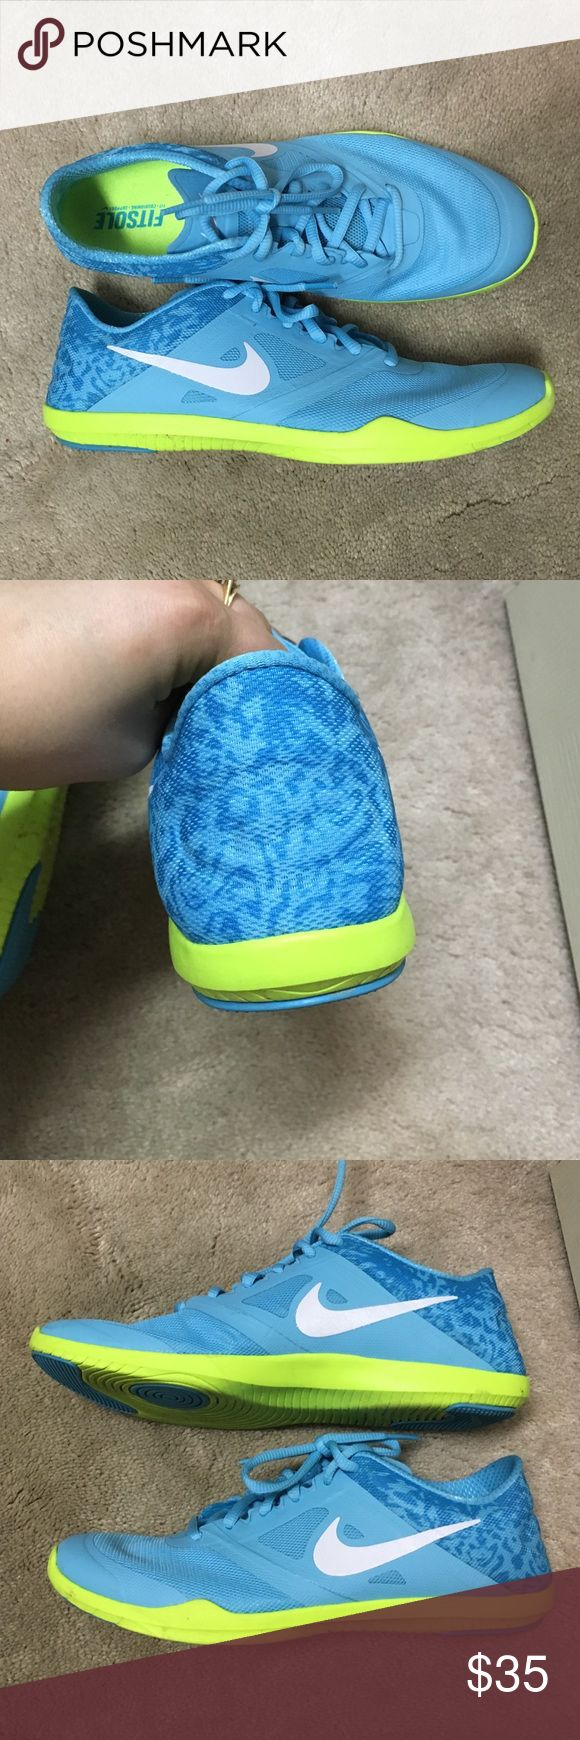 Nike Running Shoes Light blue and neon running shoes. Worn a few times. Very light and comfortable Nike Shoes Athletic Shoes